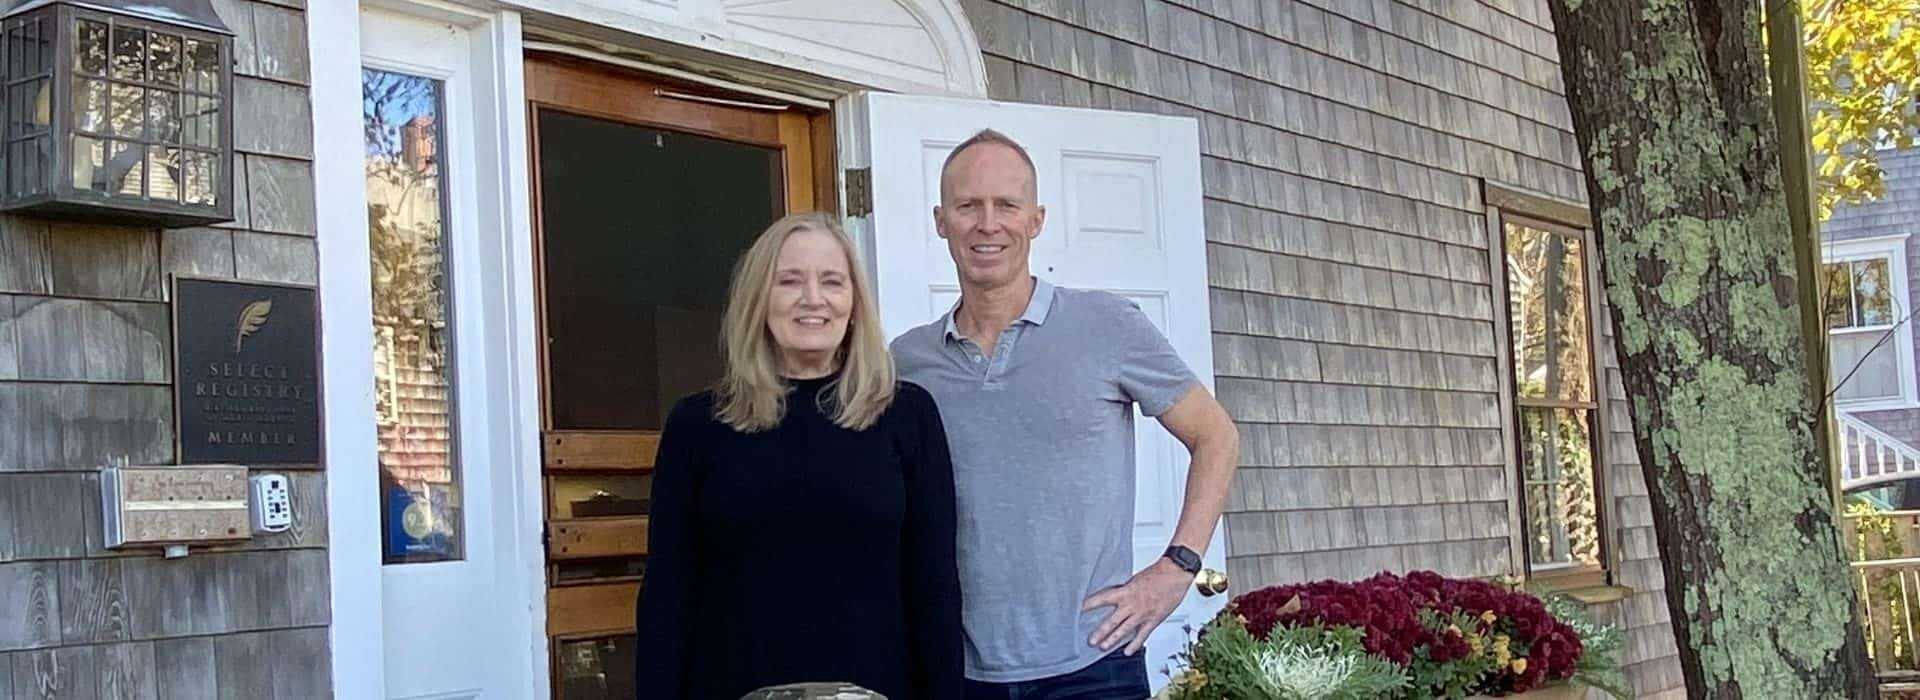 Lady with navy top and man with gray polo standing at the front entrance of the property